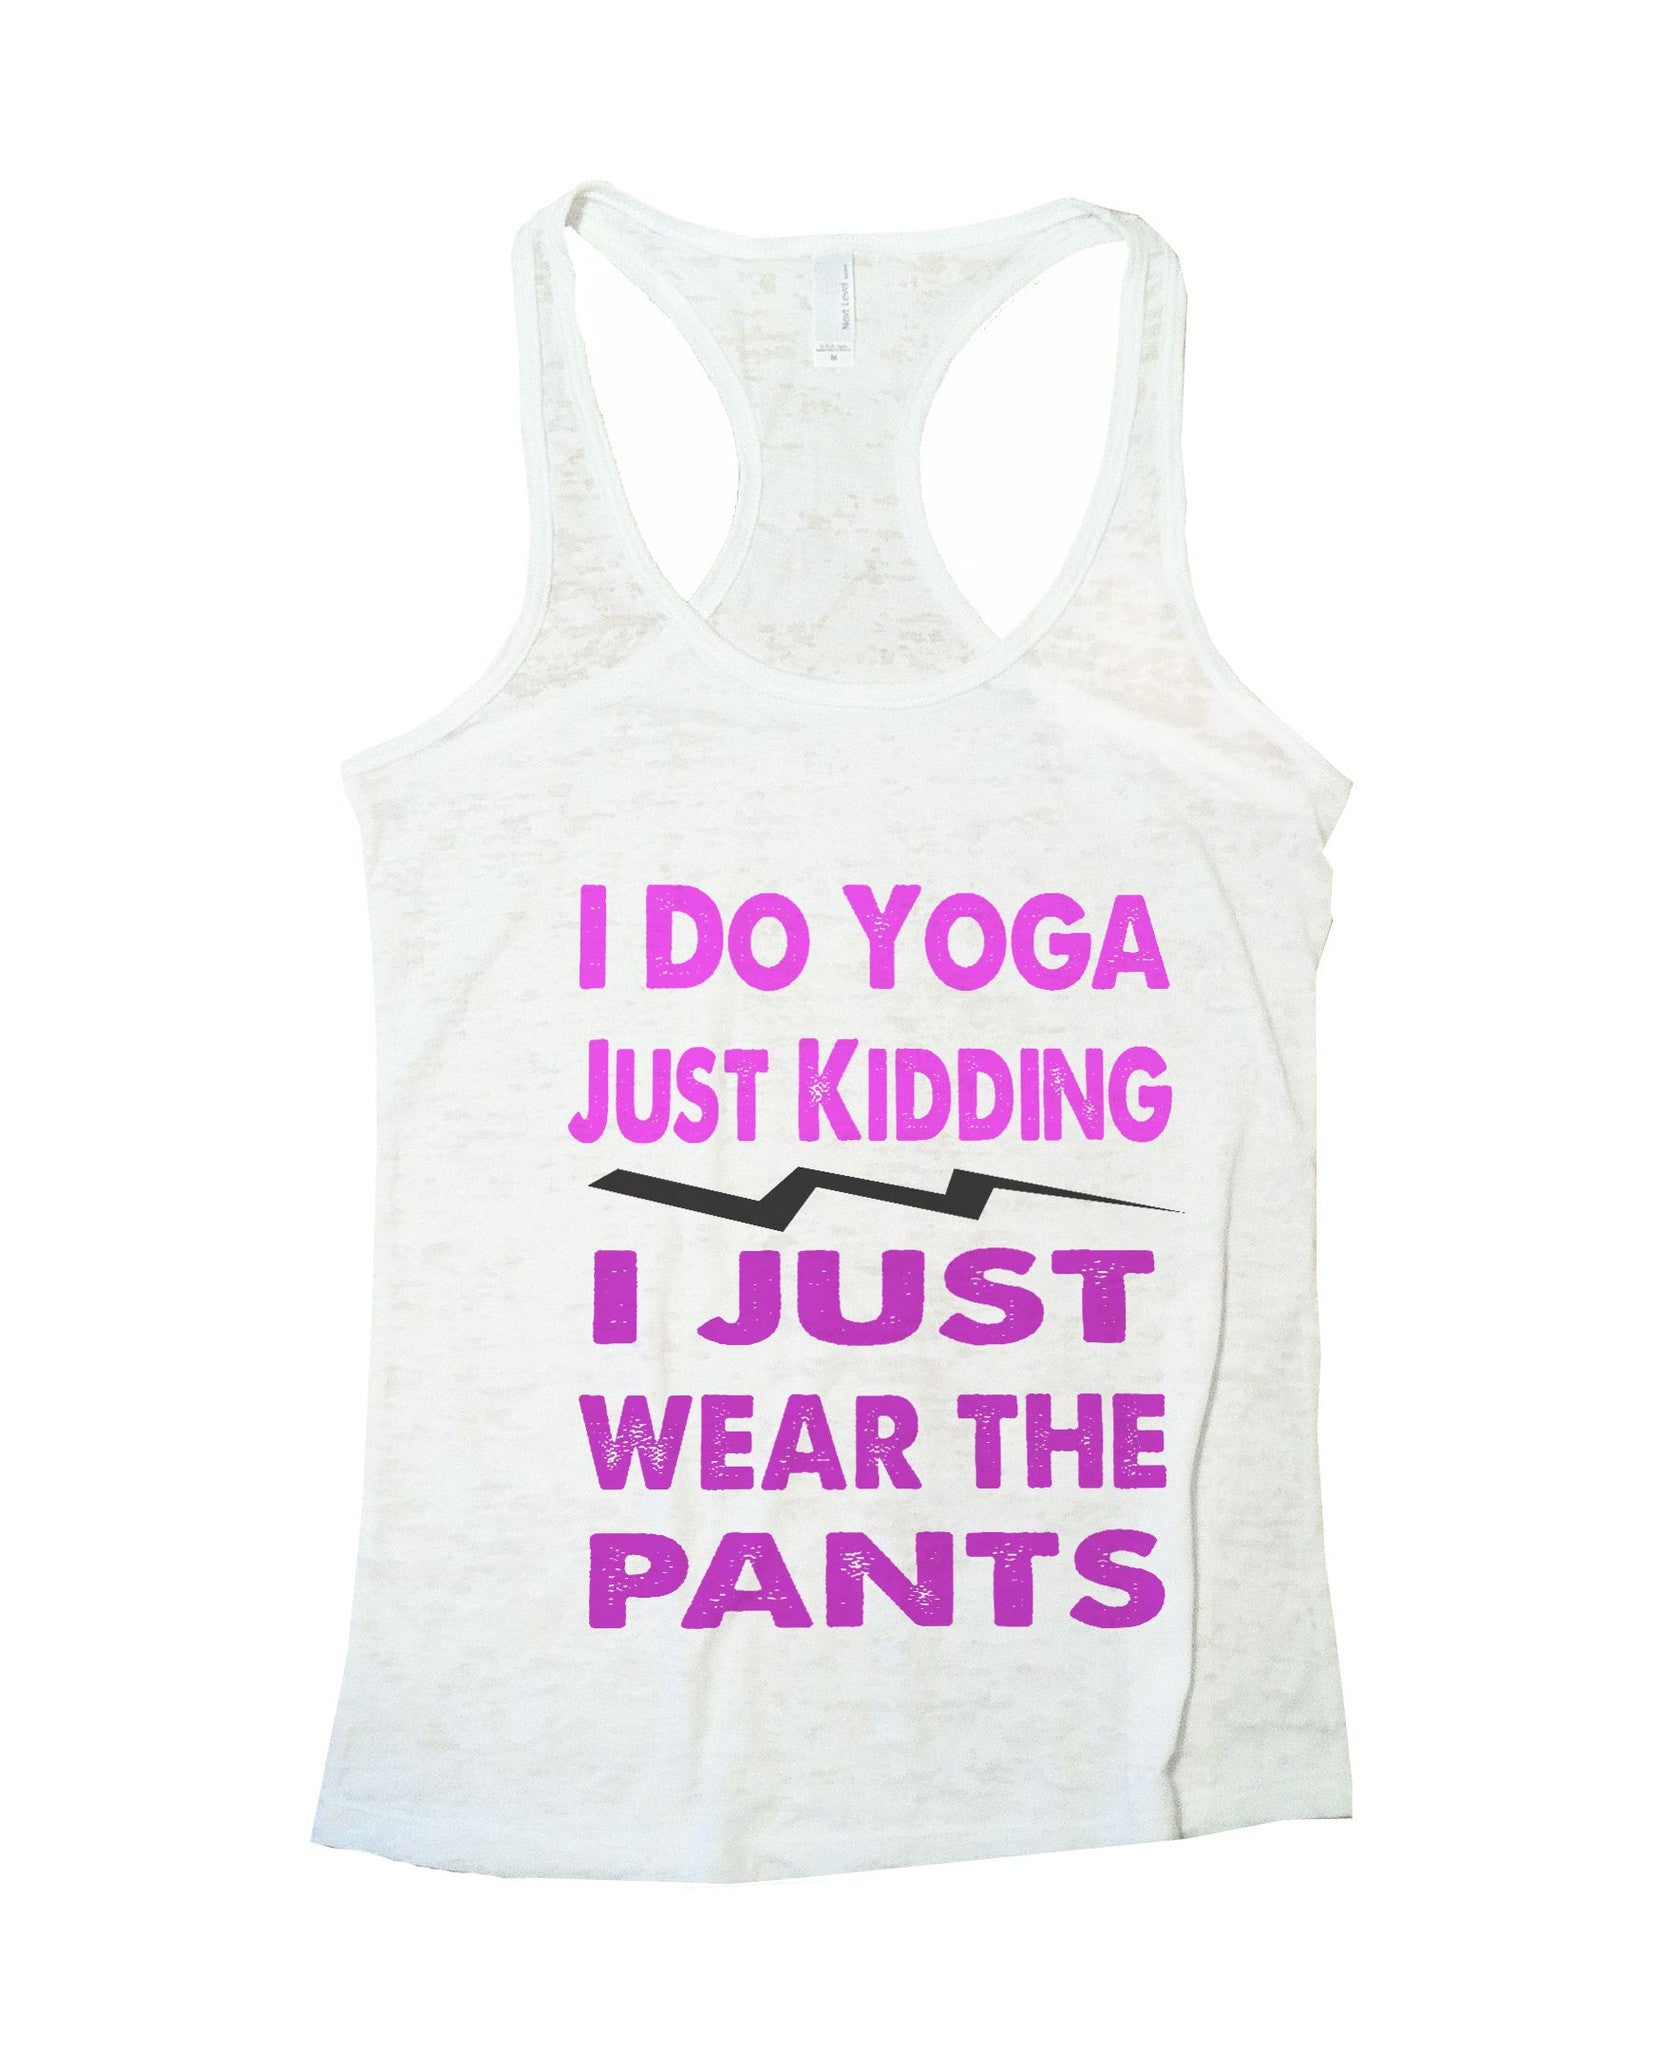 I Do Yoga Just Kidding I Just Wear The Pants Burnout Tank Top By BurnoutTankTops.com - 633 - Funny Shirts Tank Tops Burnouts and Triblends  - 3